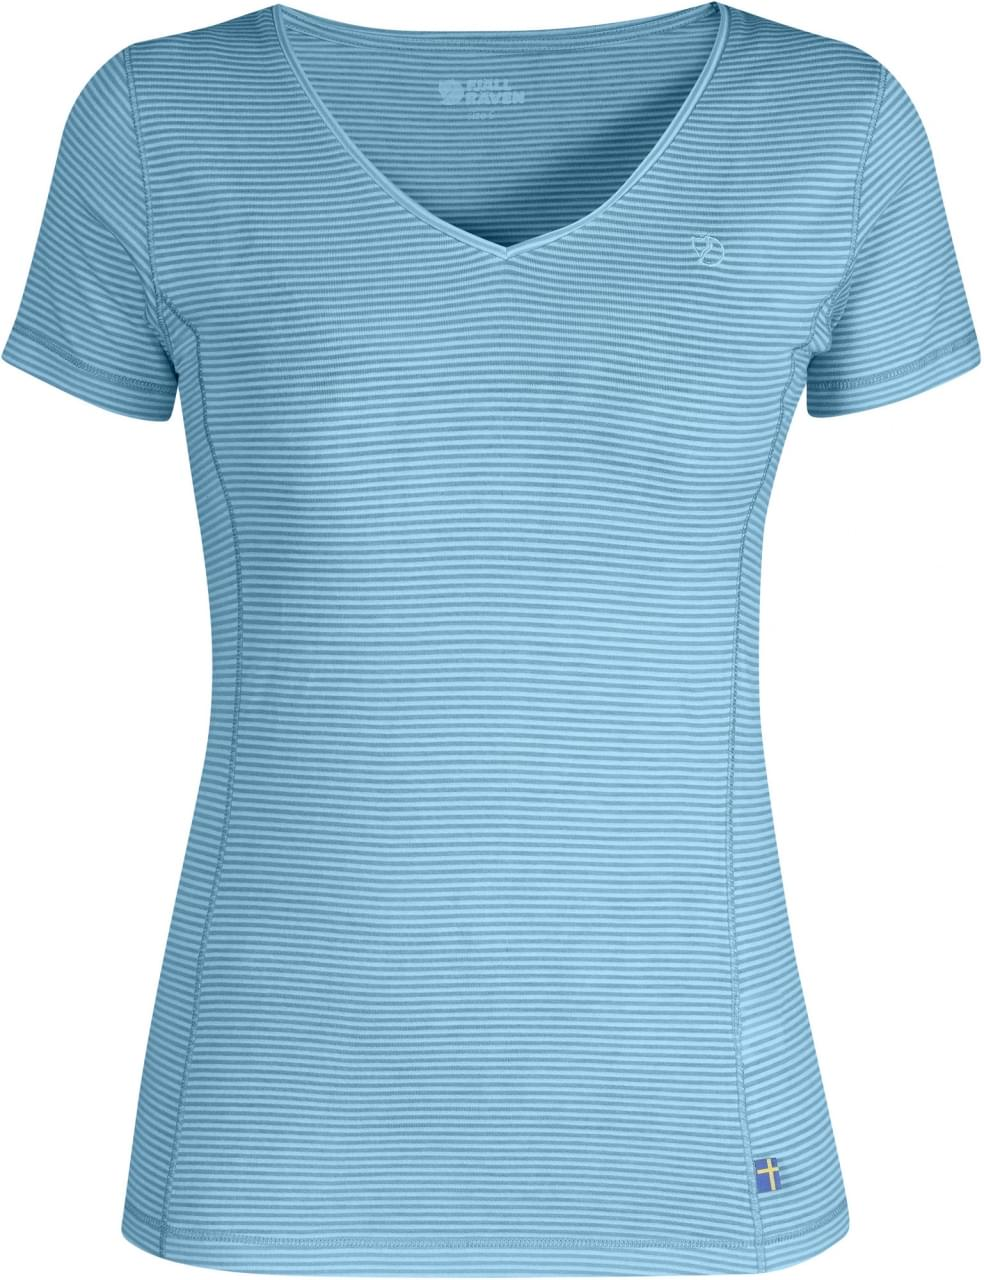 Fjallraven Abisko Cool T-Shirt Women